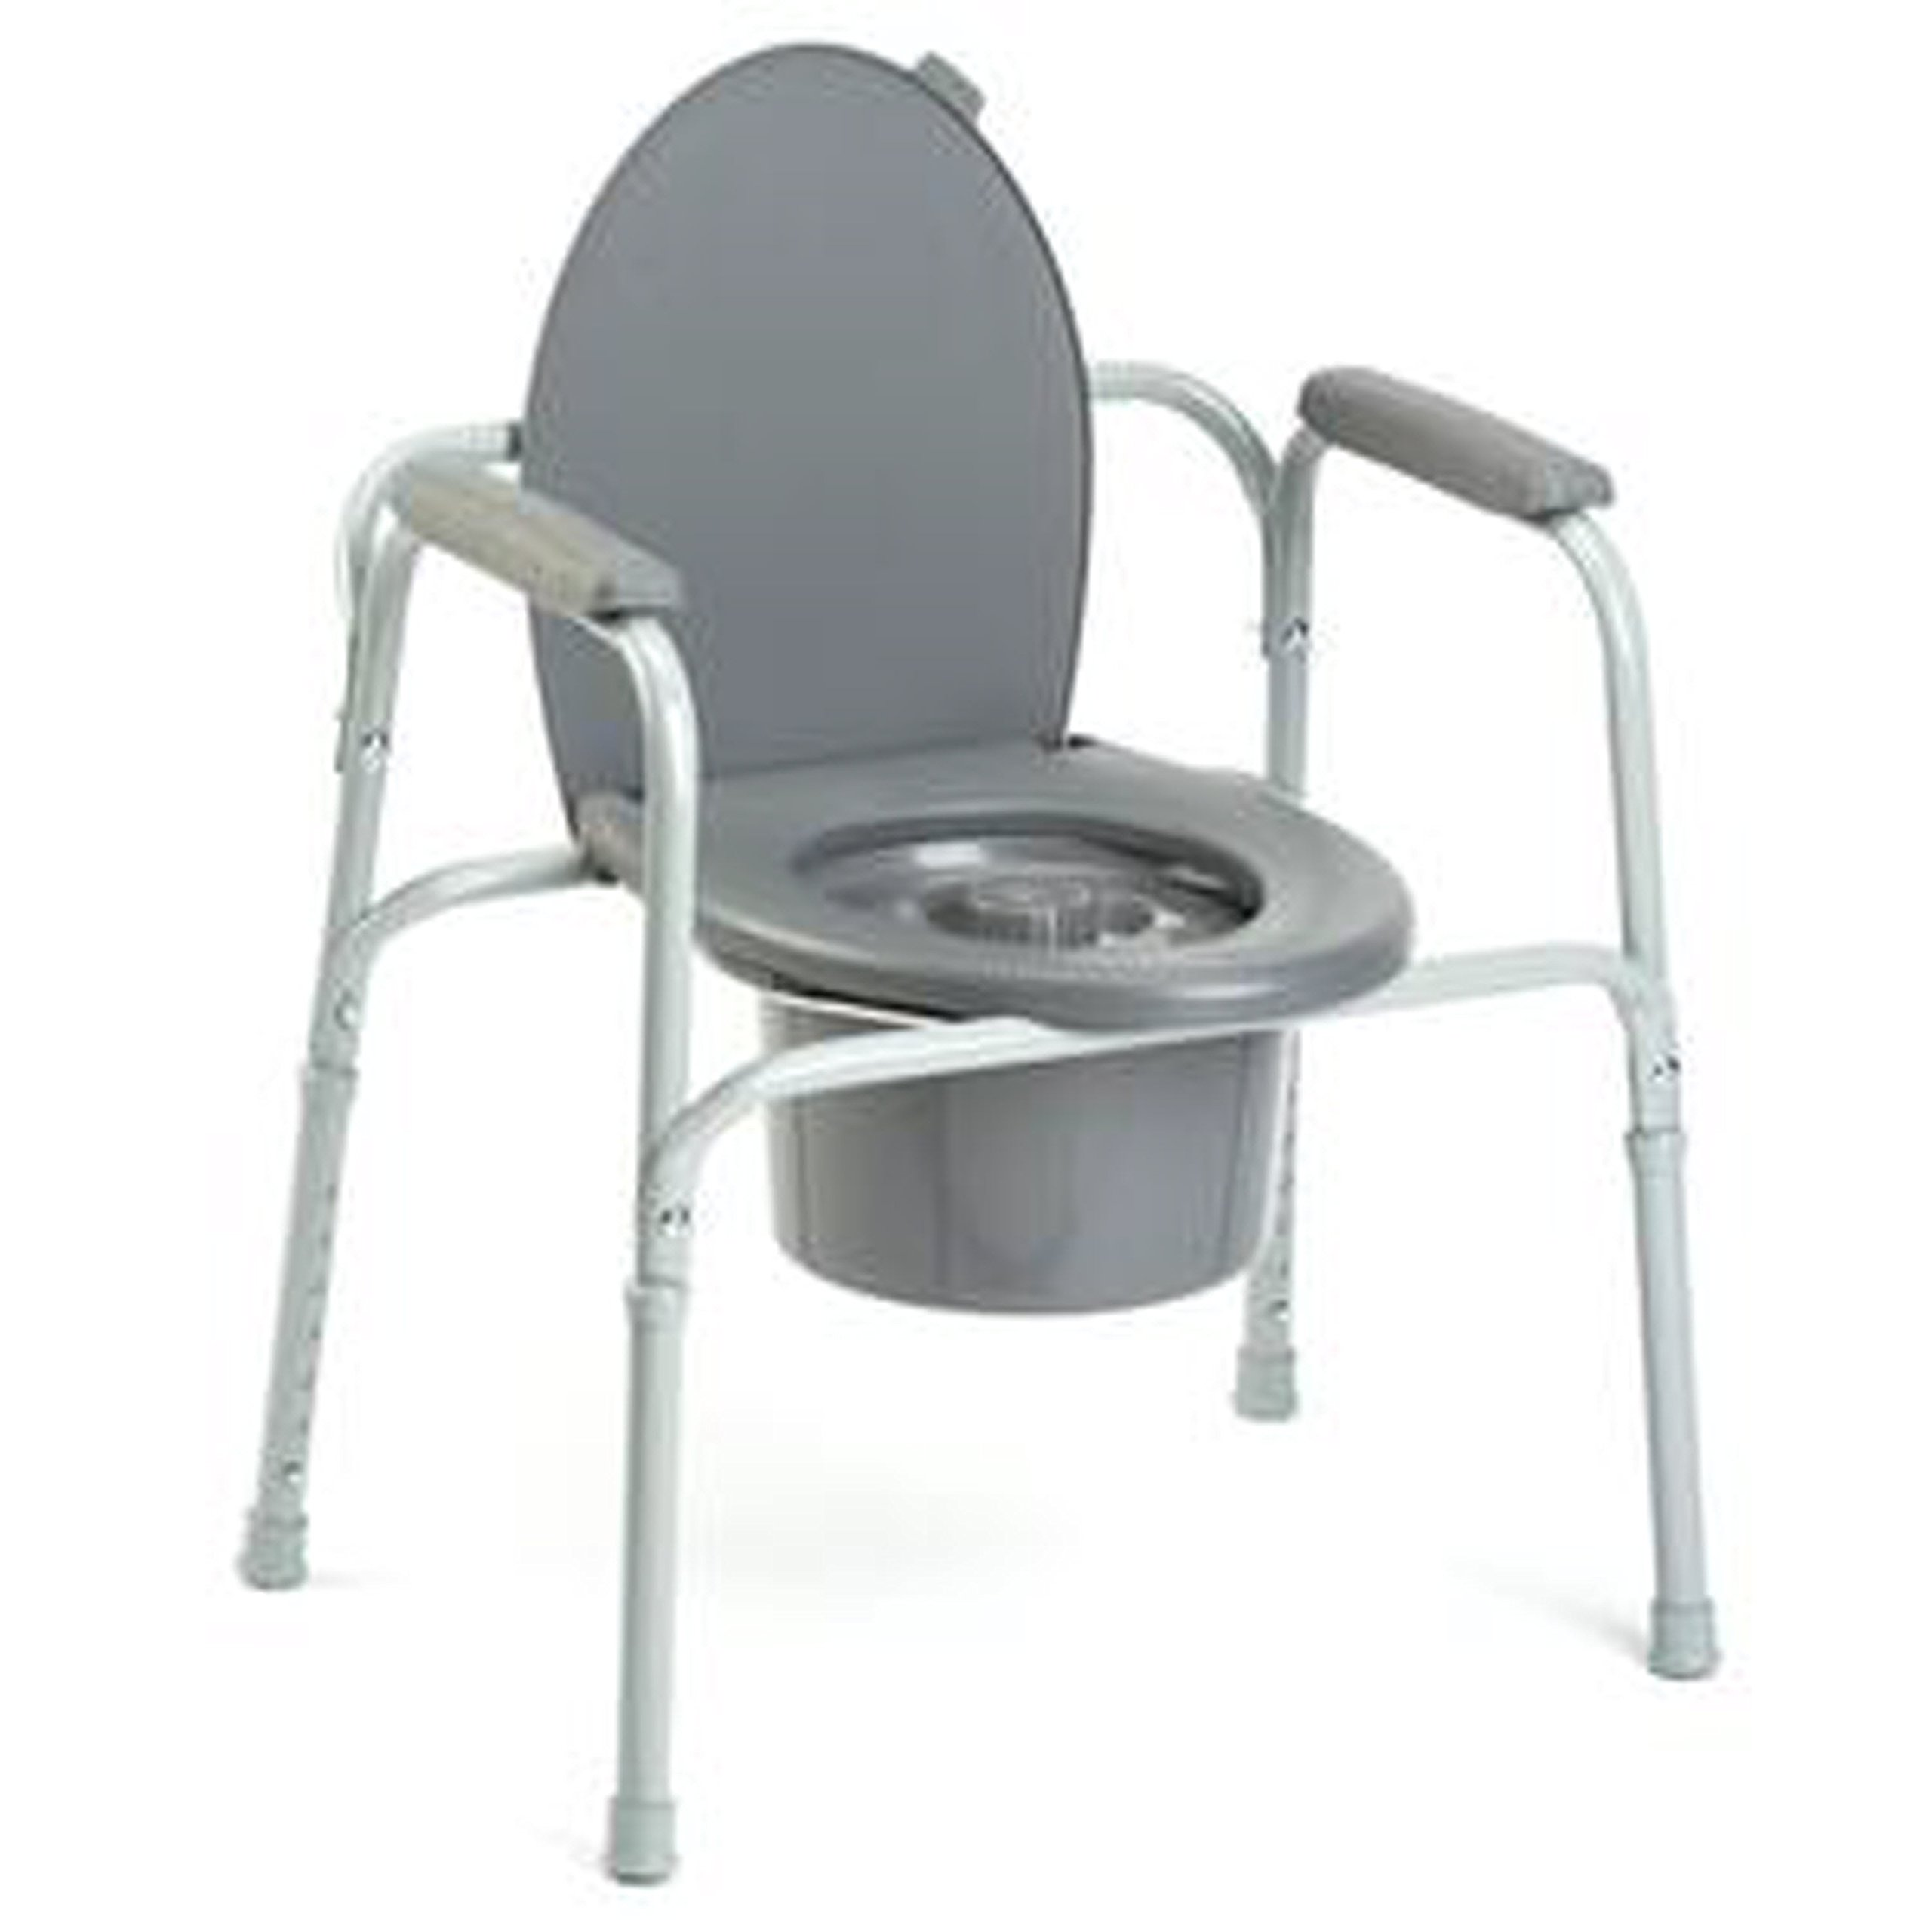 INV96504EA - All-In-One Aluminum Commode